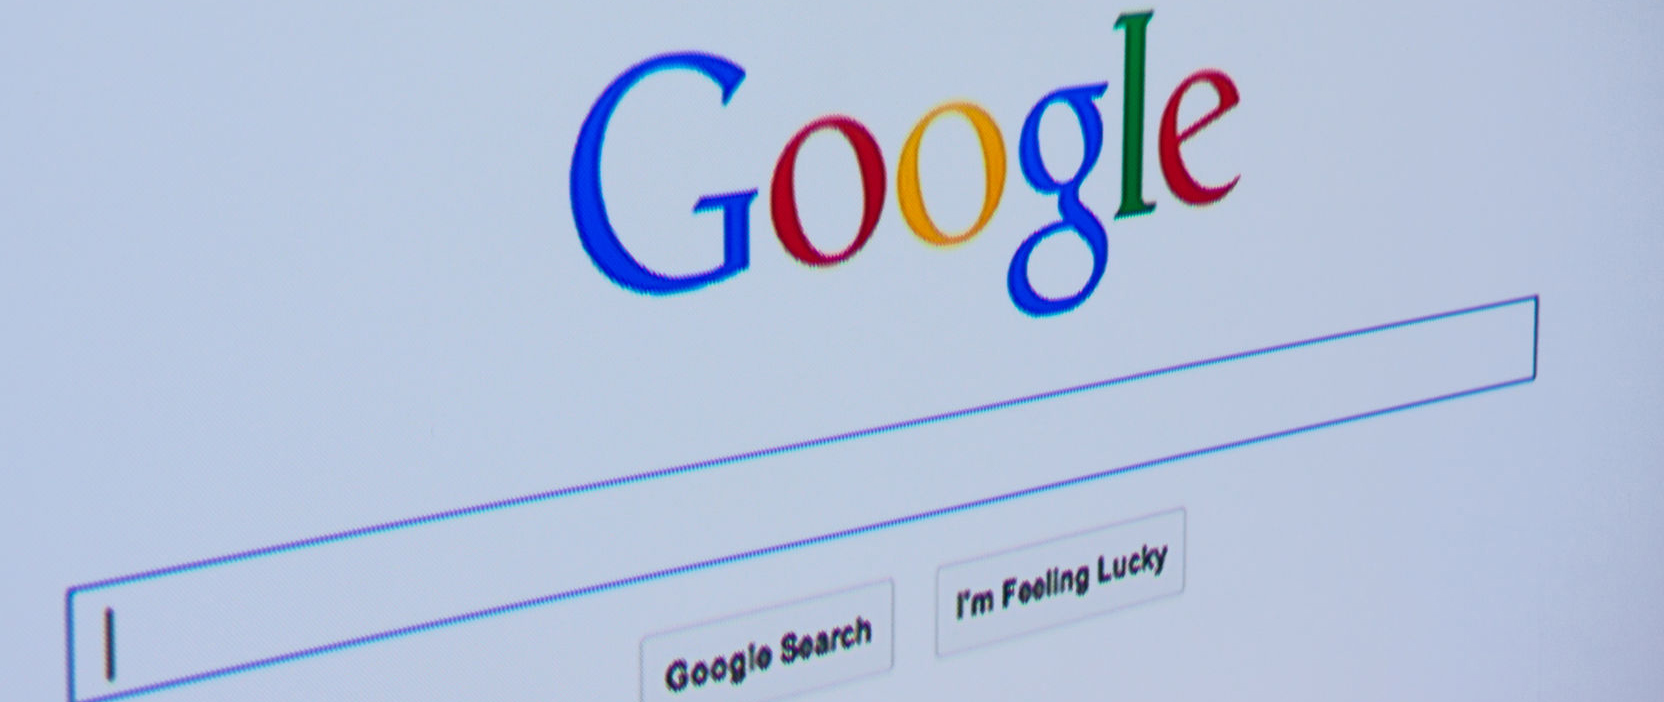 What can we expect when Google rolls out its new Search Console features?